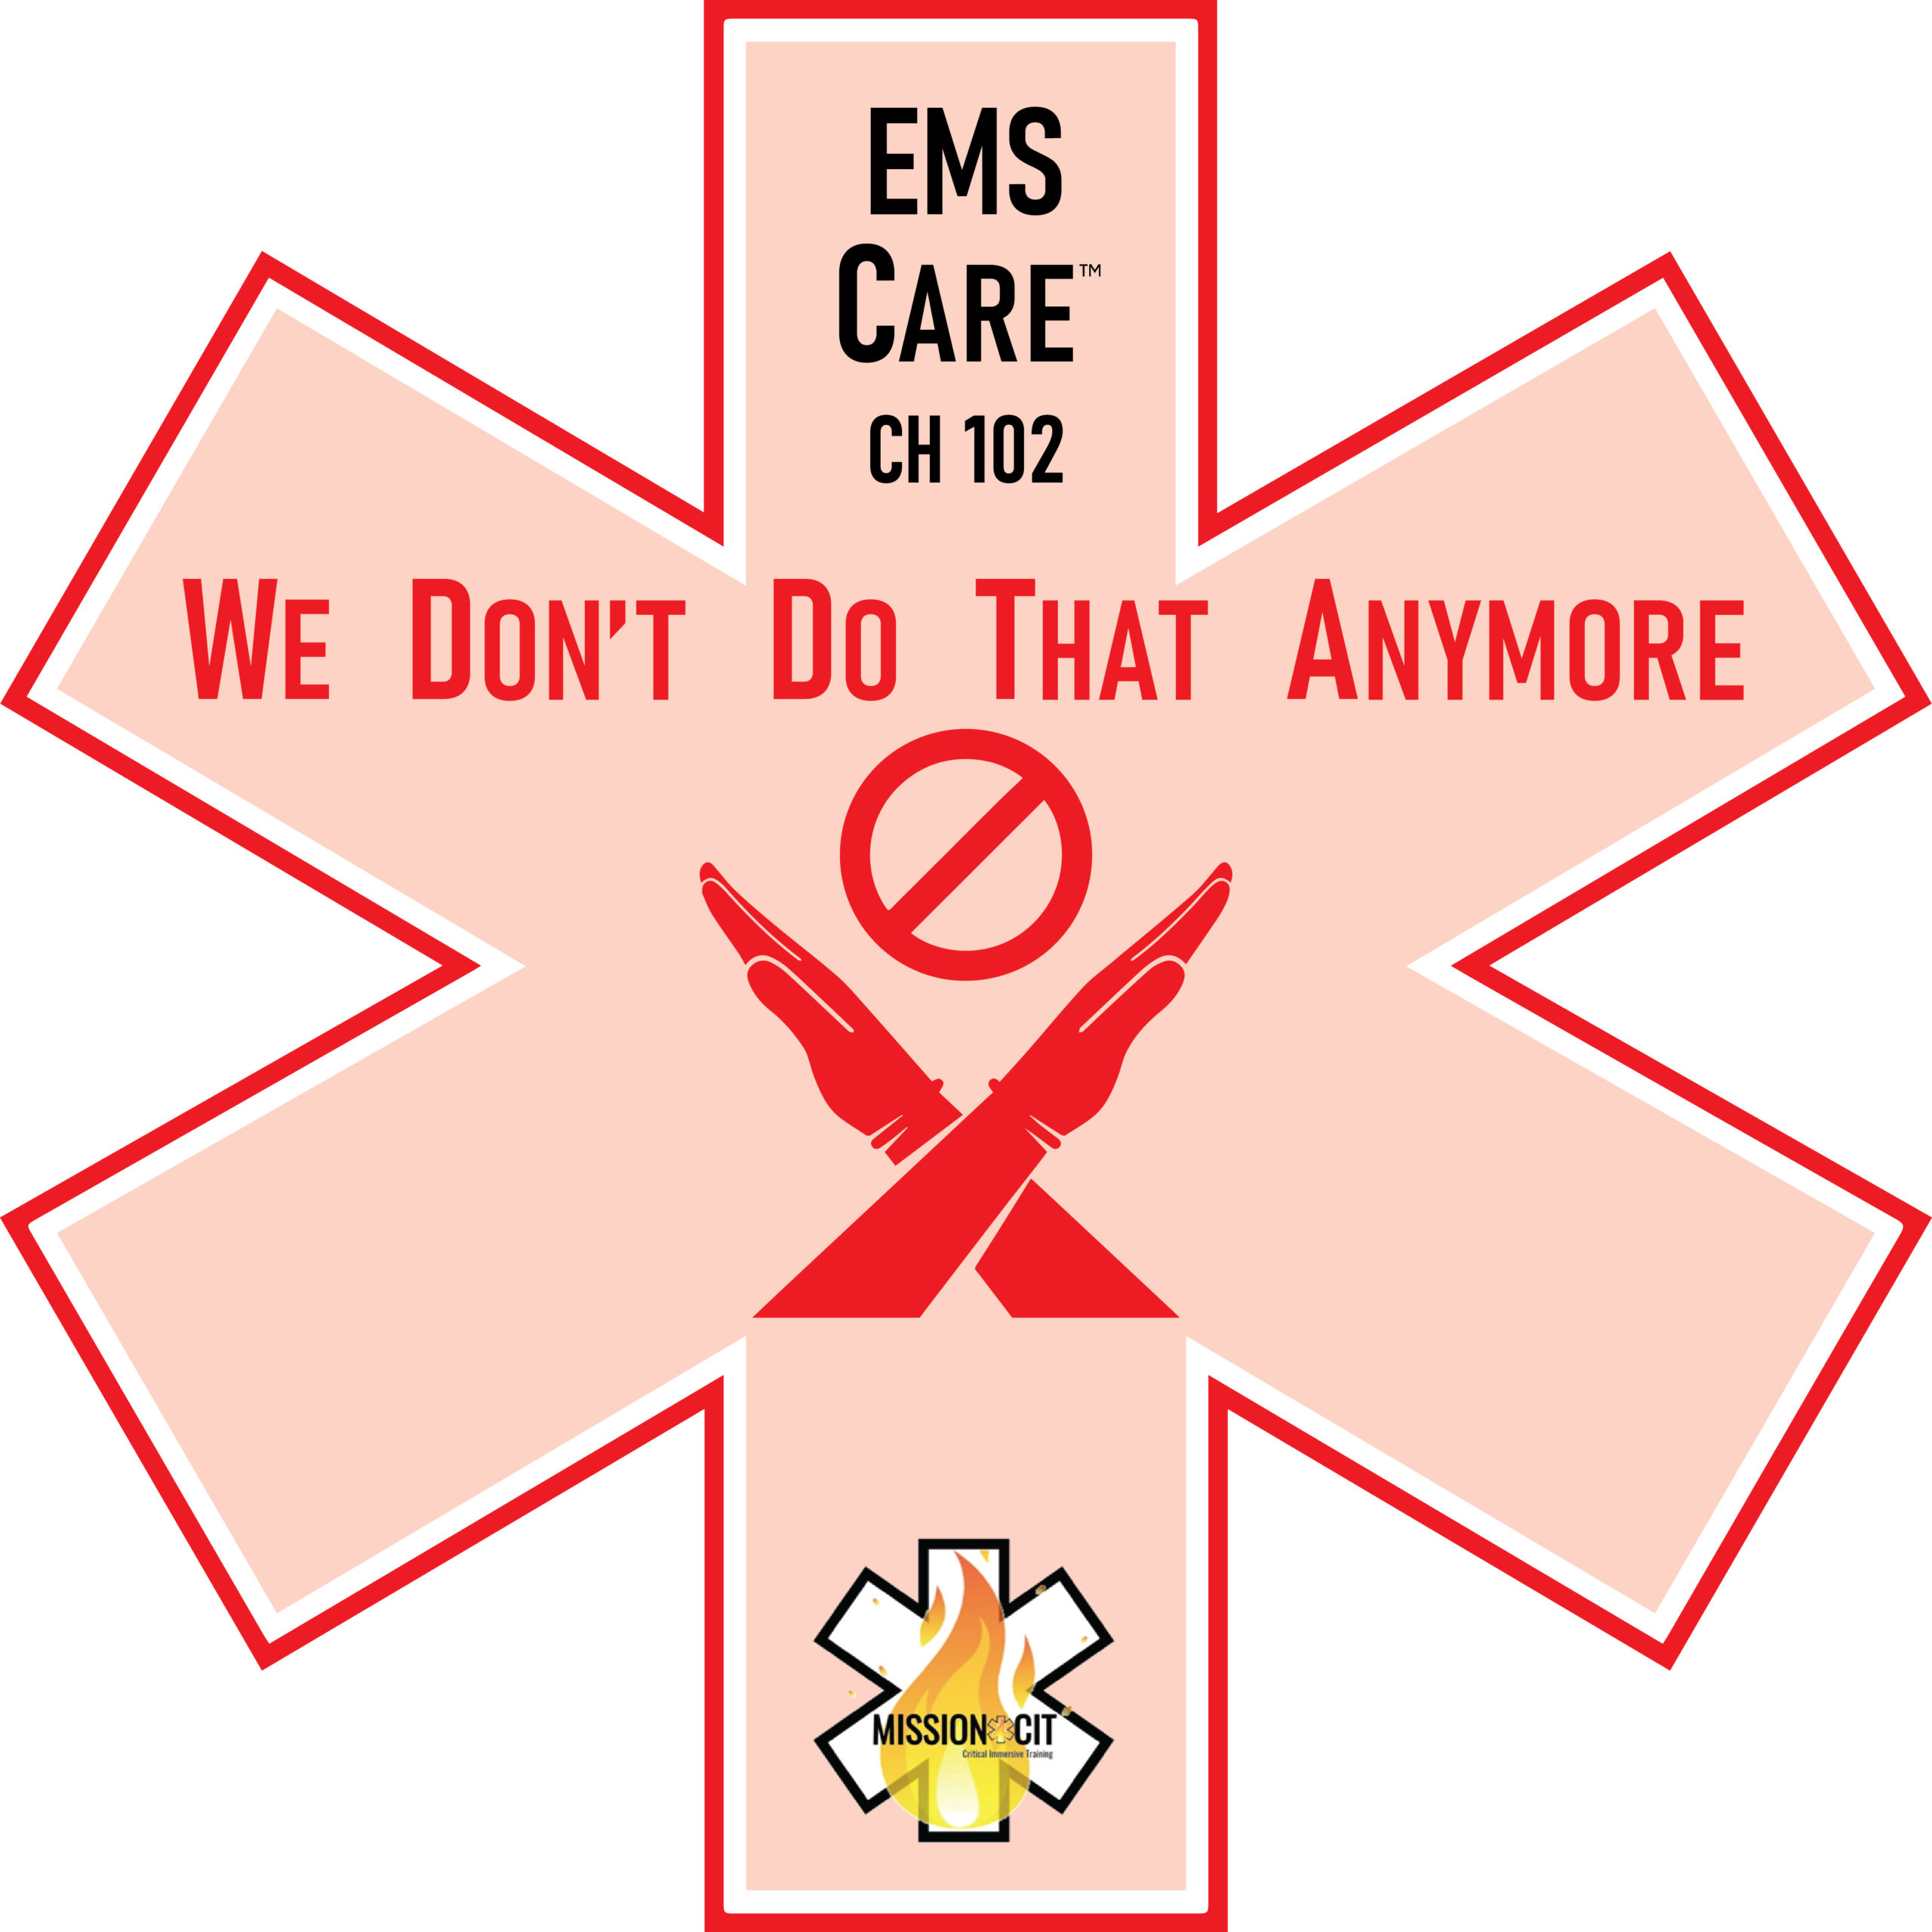 EMS Care Chapter 102 | We Don't Do That Anymore